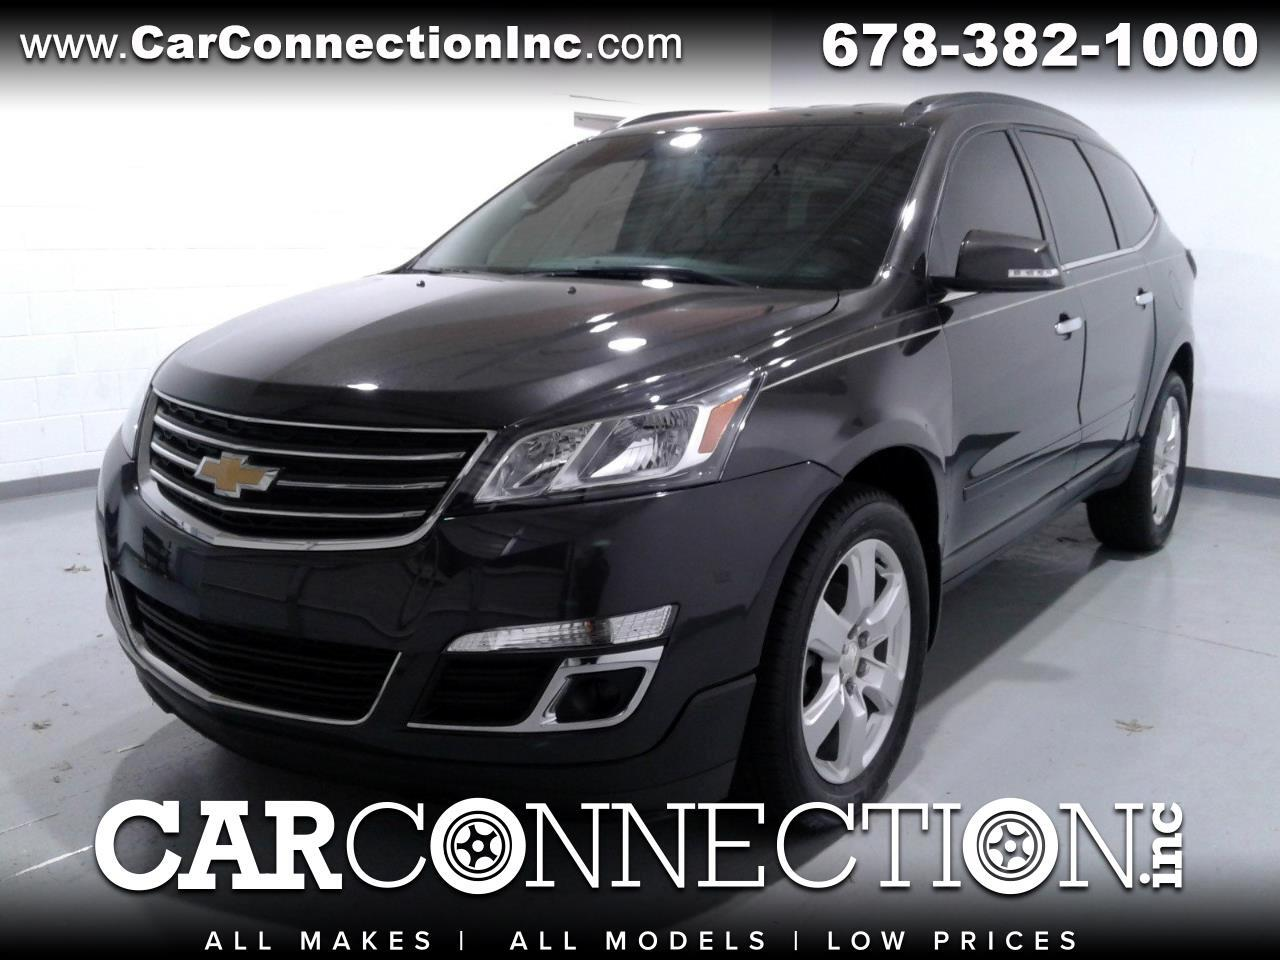 2019 Chevrolet Traverse 2LT FWD